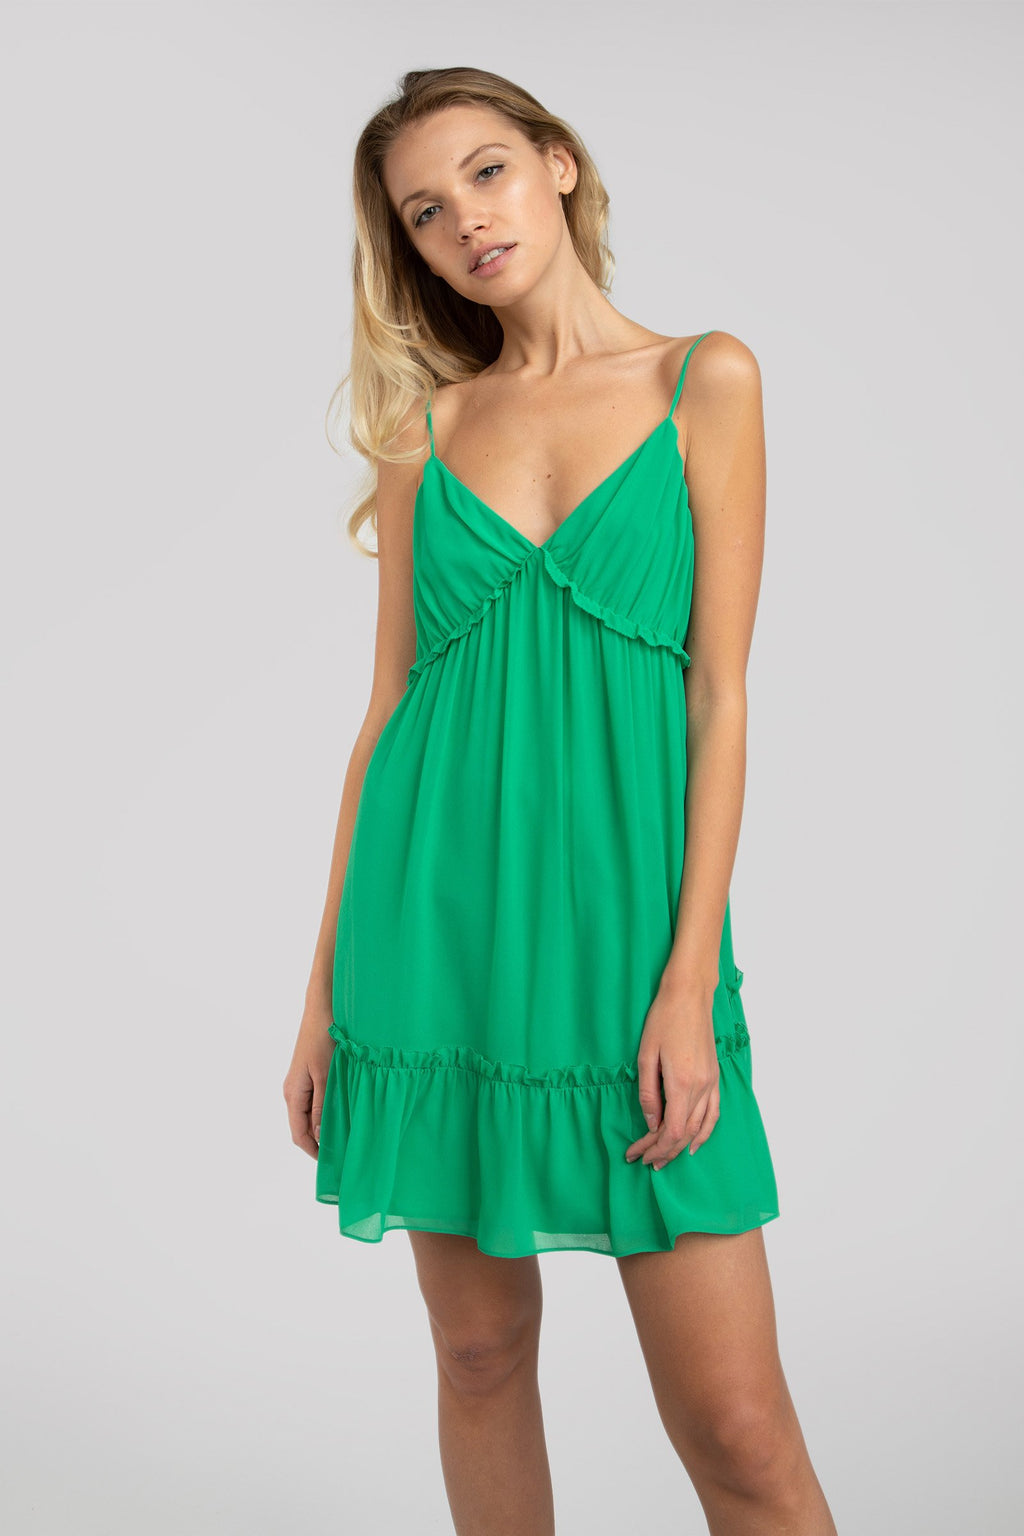 LAST CALL SIZE L | Ruffled Cami Dress in Jade Green